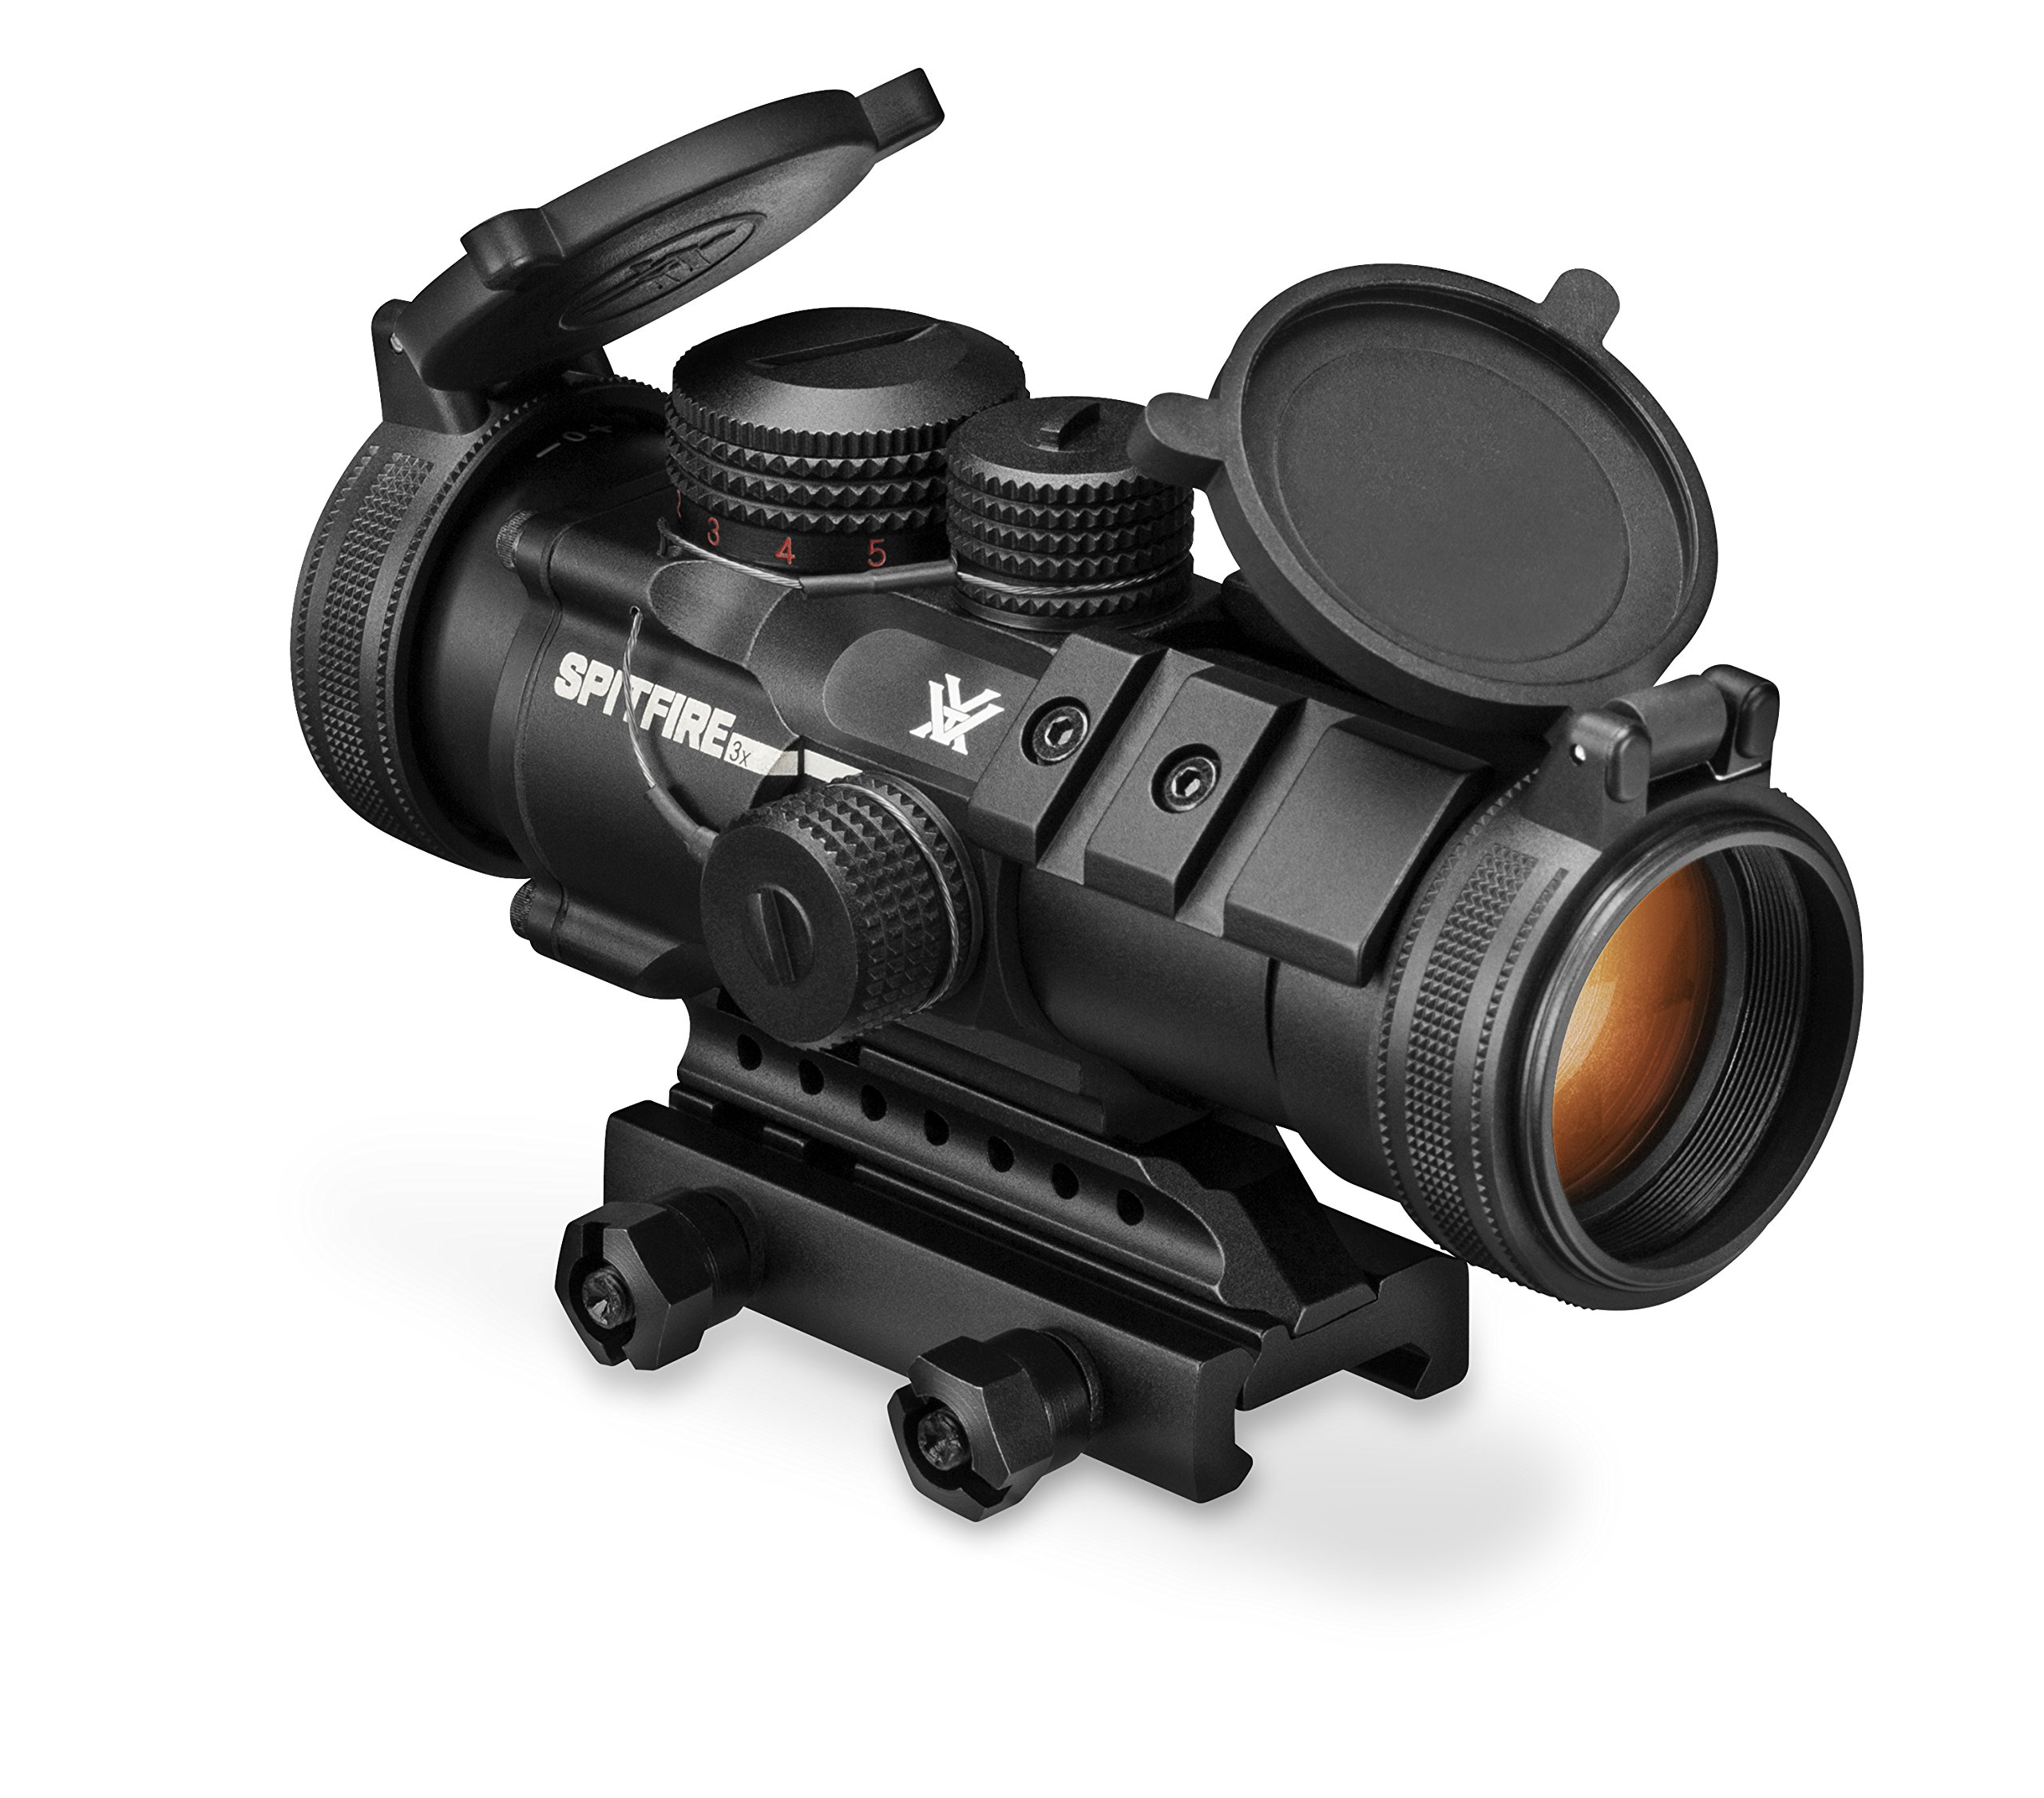 Vortex Optics Spitfire 3x Prism Scope - EBR-556B Reticle (MOA) by Vortex Optics (Image #1)